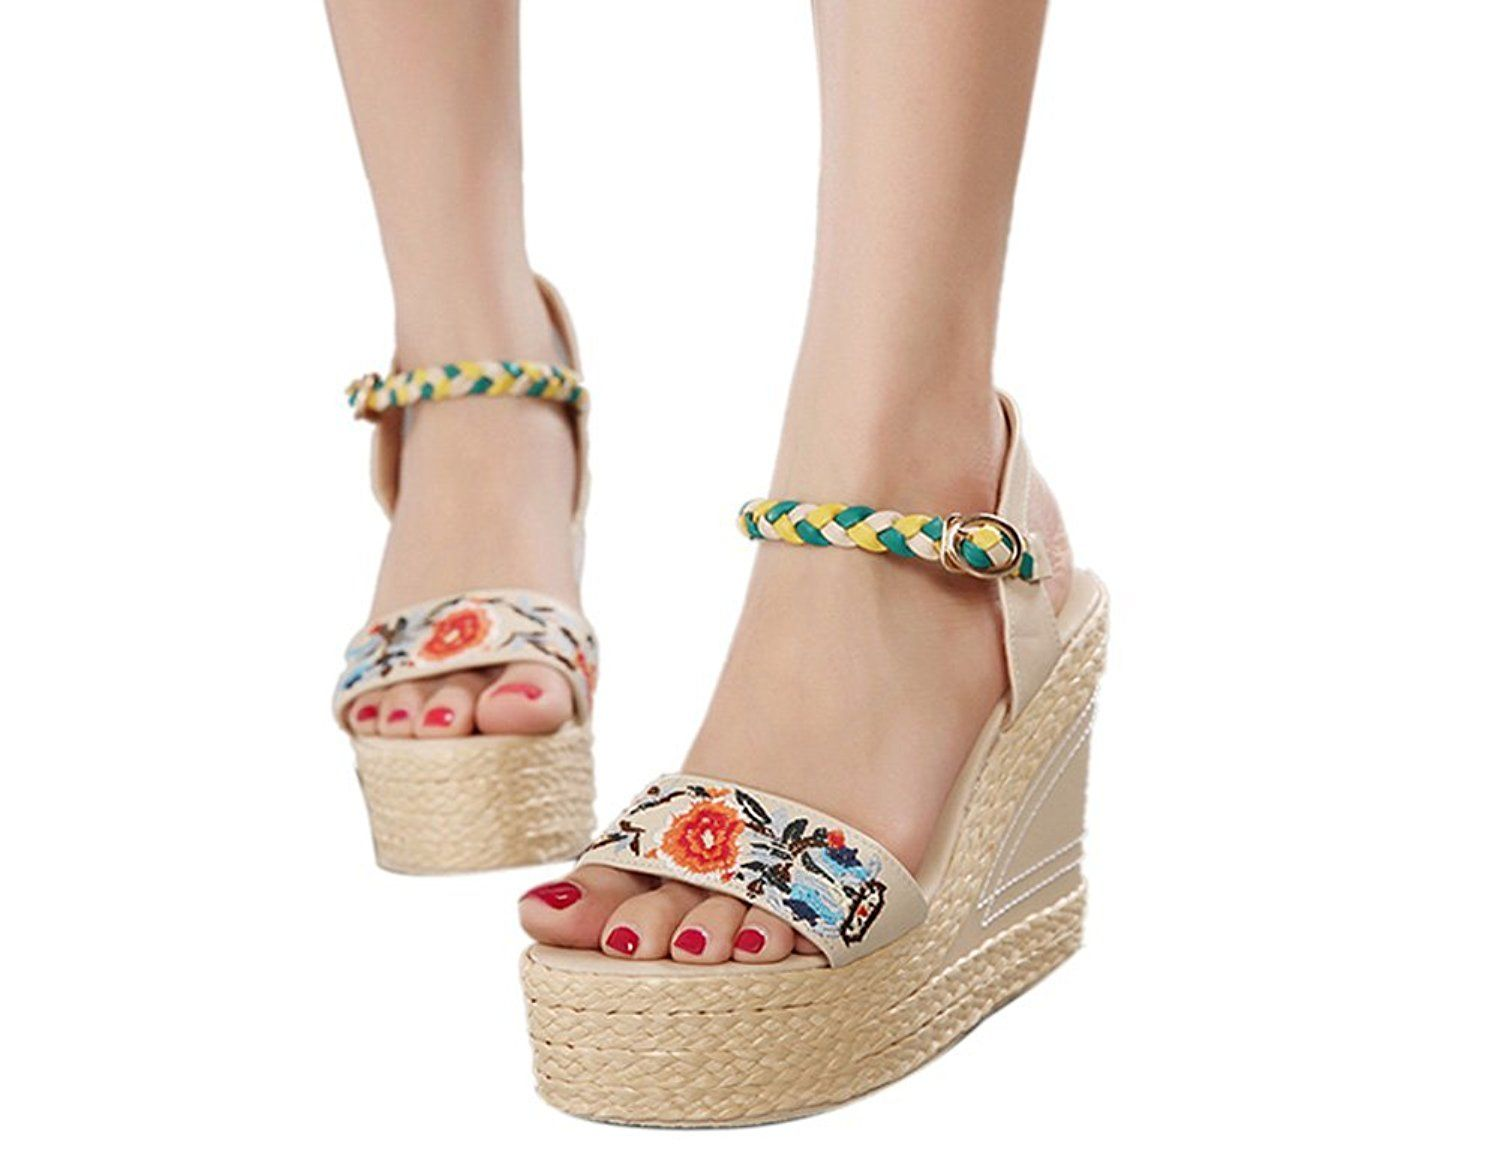 f43e6ffd80a9 Ashlen Women s Embroidery Floral Open Toe Ankle Strap Platform Wedge  Sandals   To view further for this item